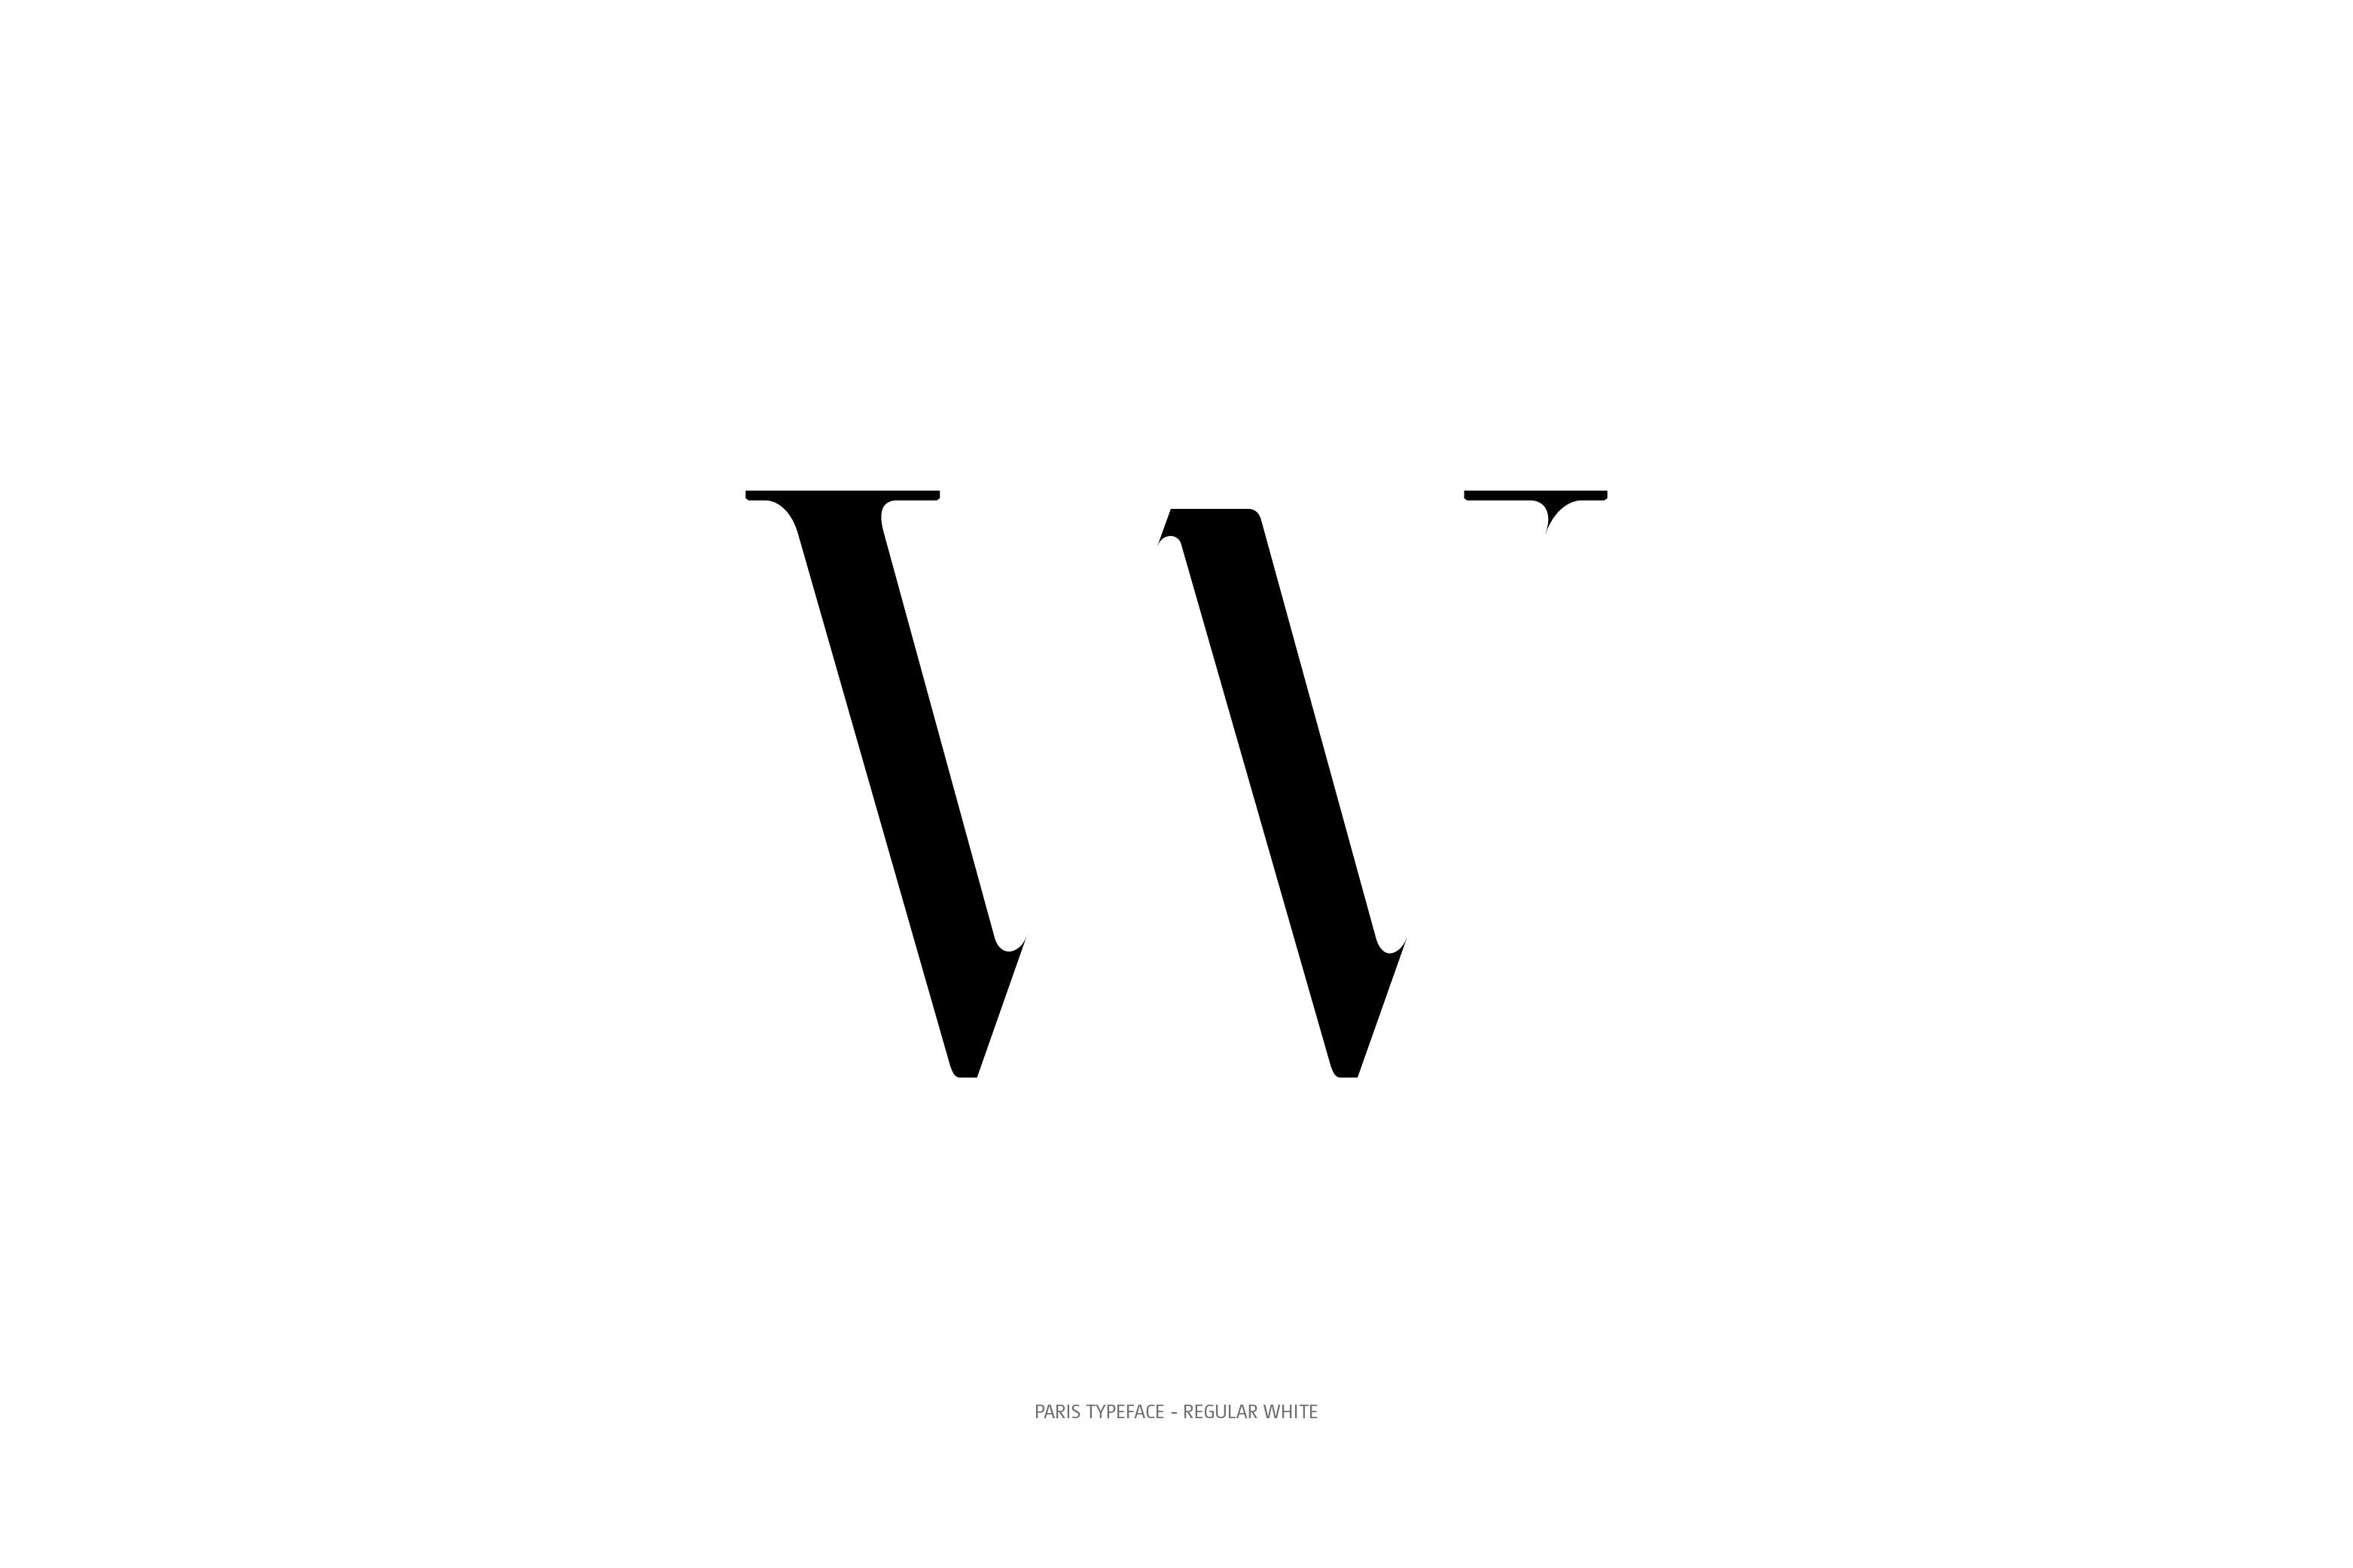 Paris Typeface Regular White W